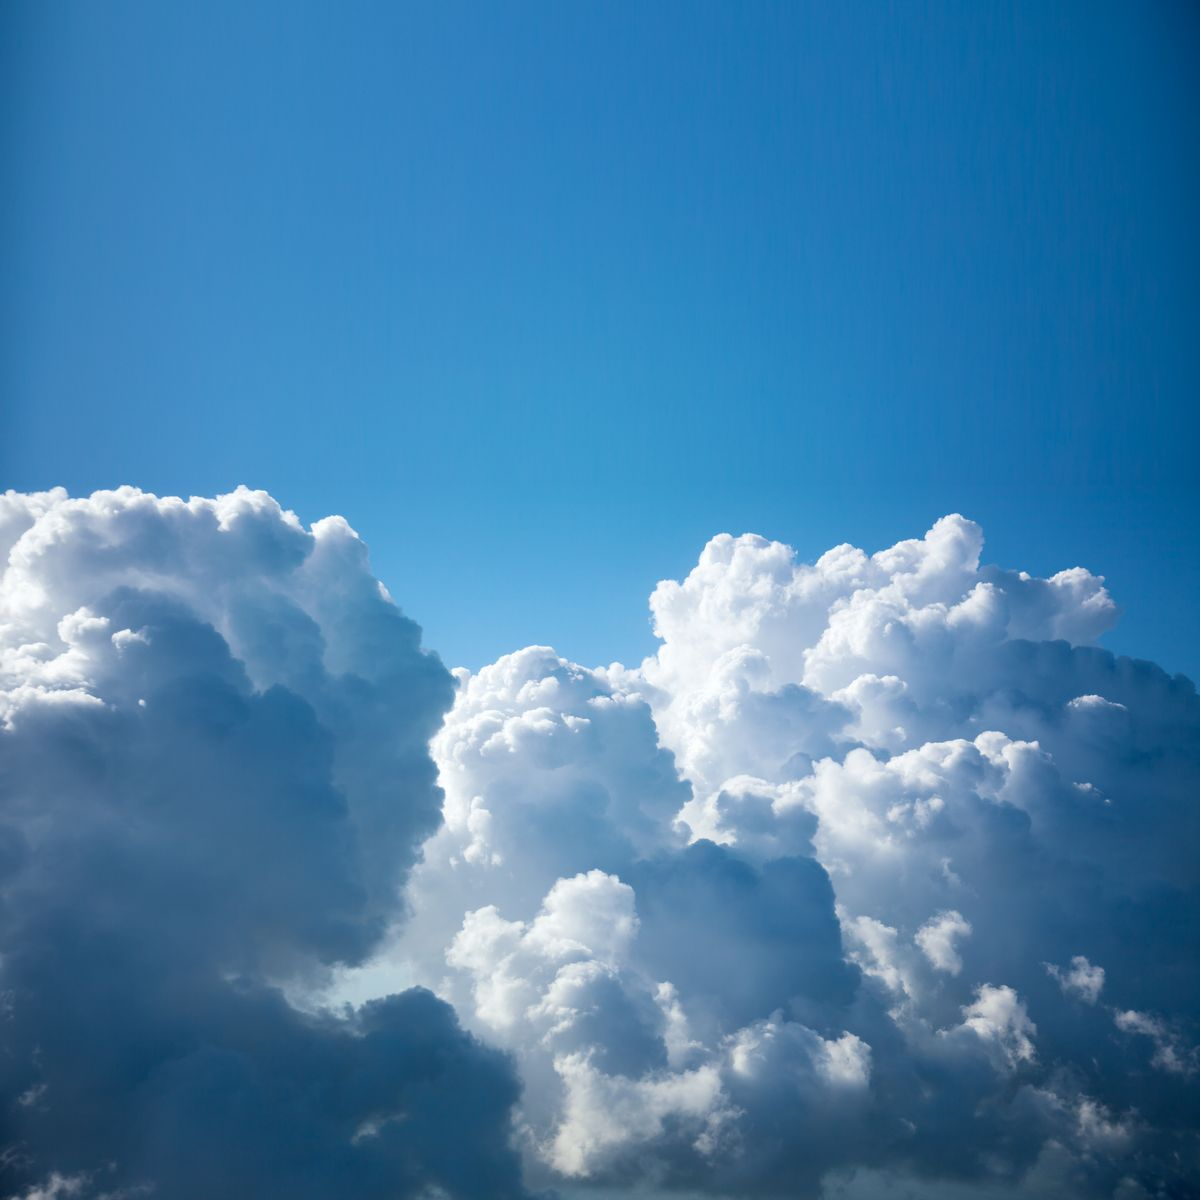 Weather Back to Basics: Clouds